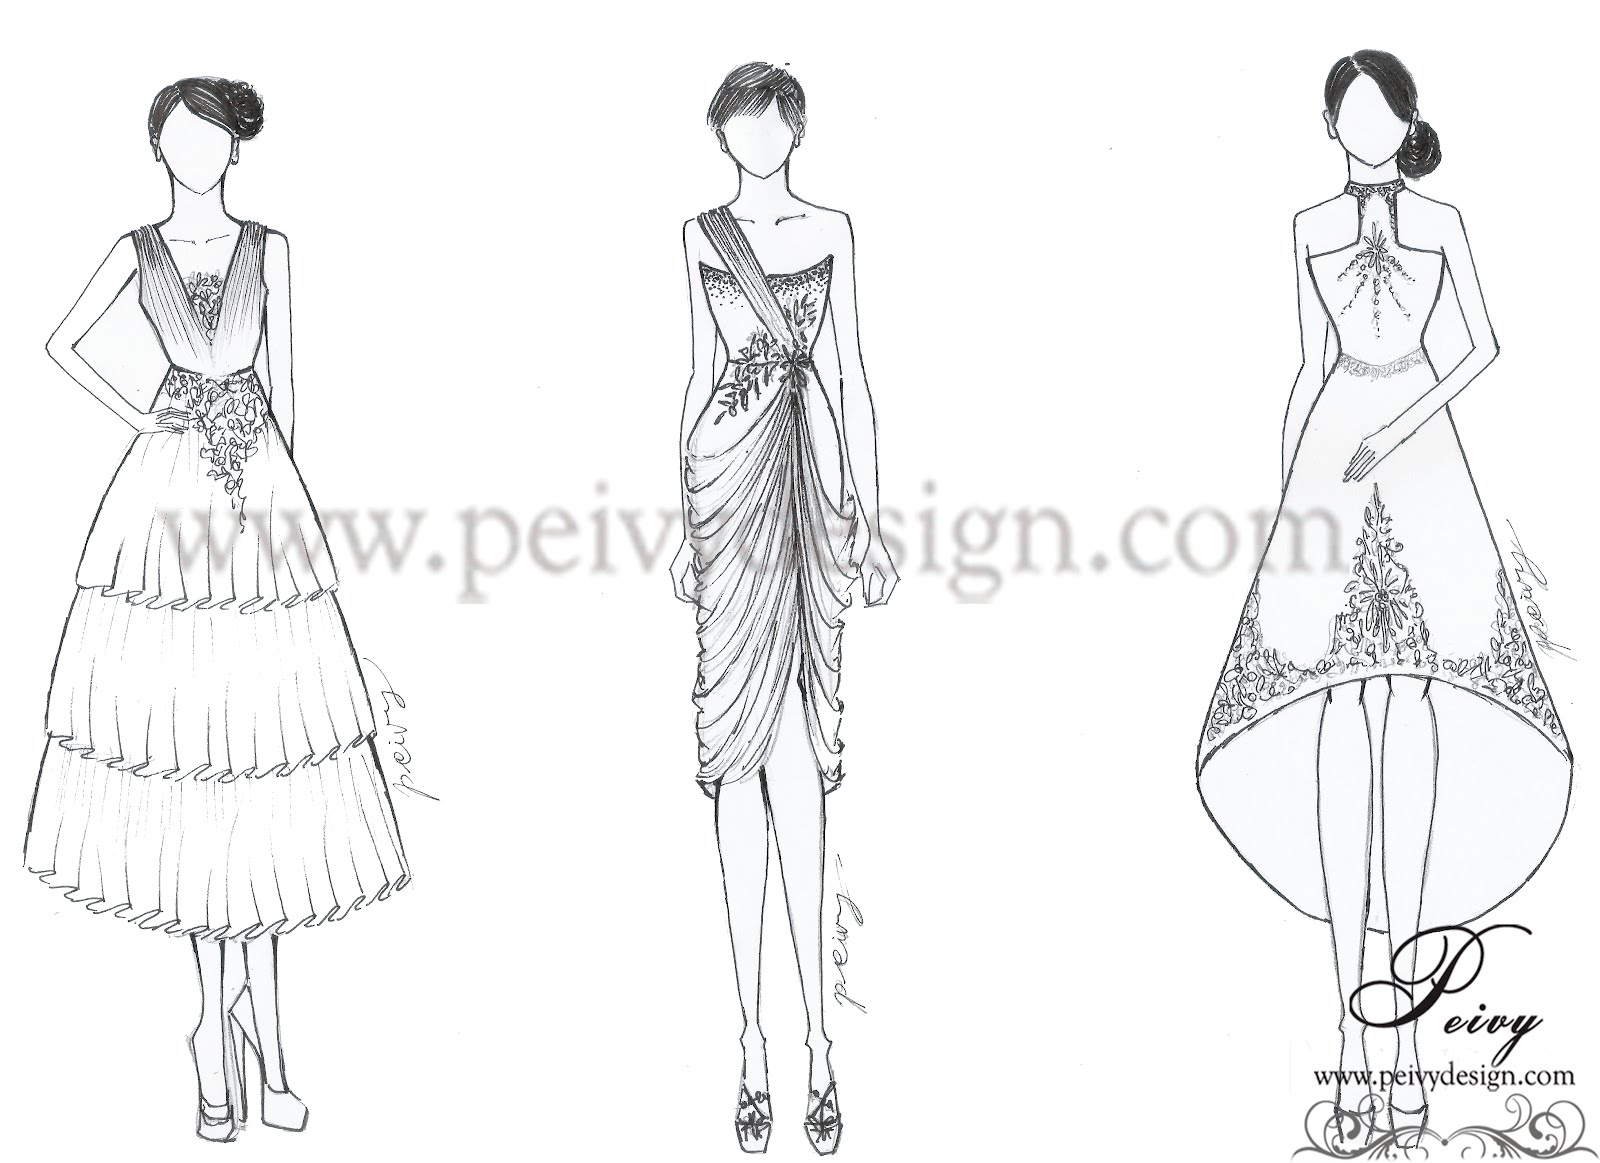 Peivy For Your Special Moments Sketch Gaun Berpotongan Midi By